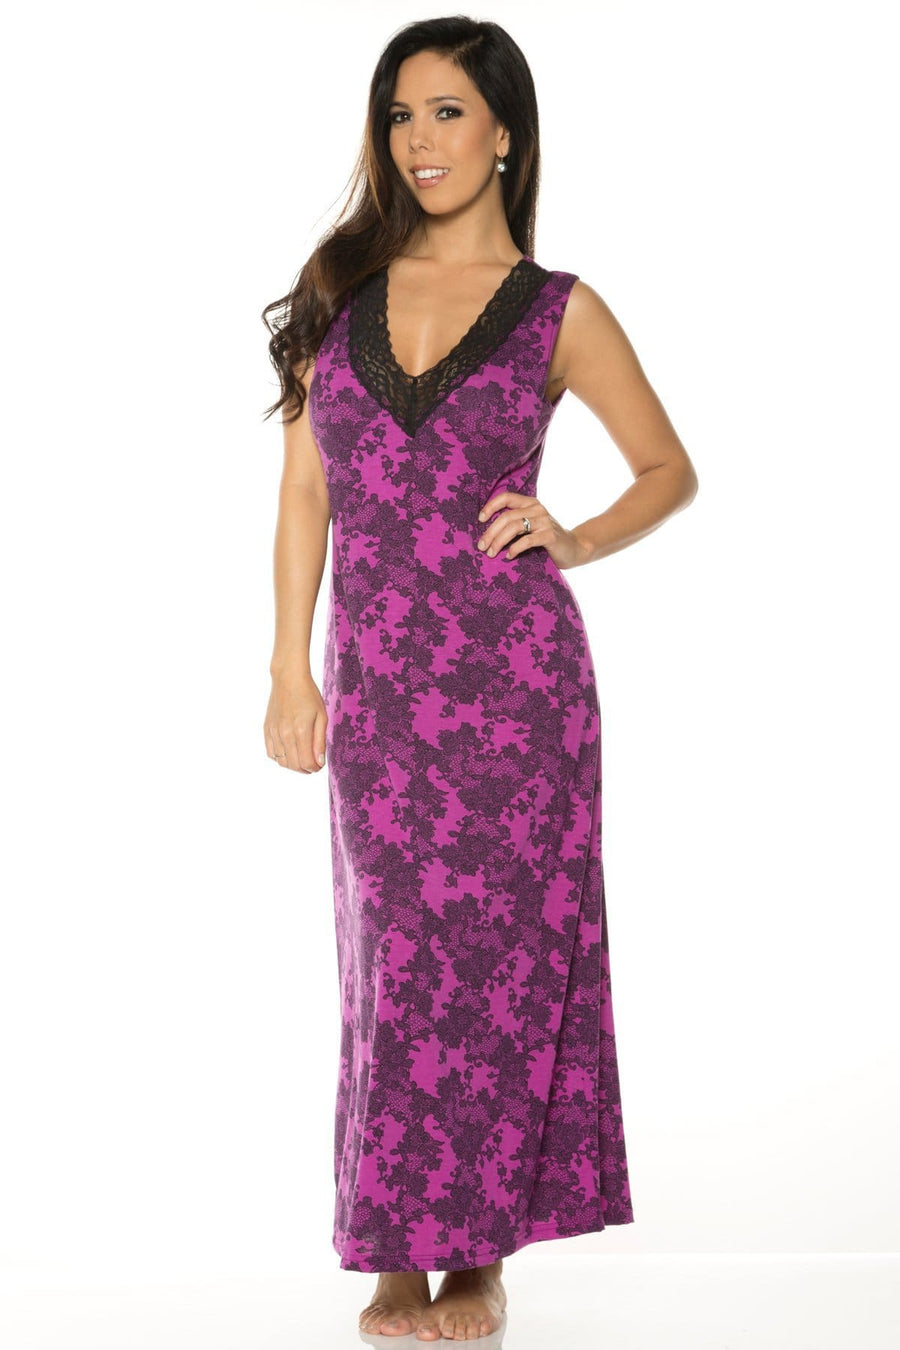 567a37cfa12c Printed Long Gown - Magenta Black Lace Print   M - Sleep